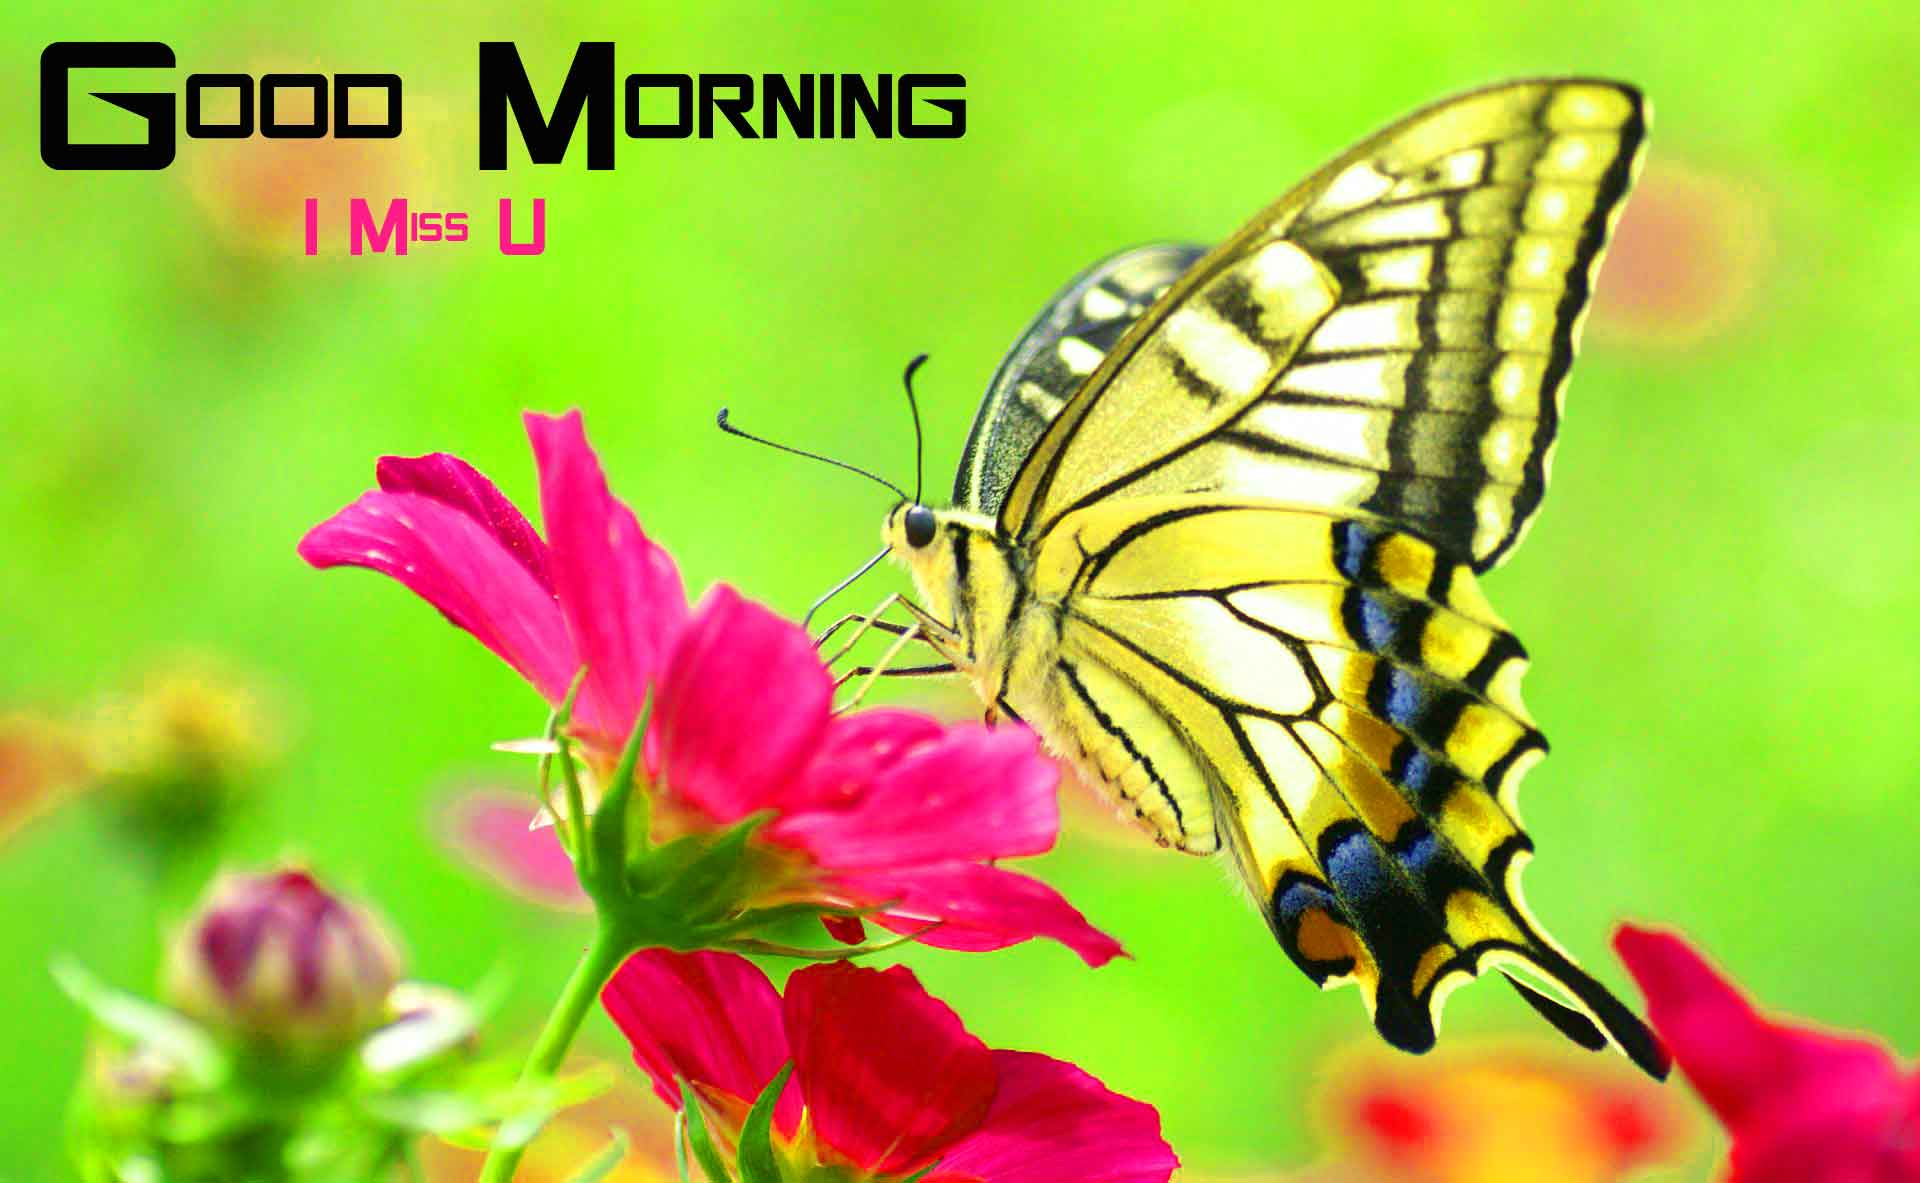 butterfly Flower good morning pics hd